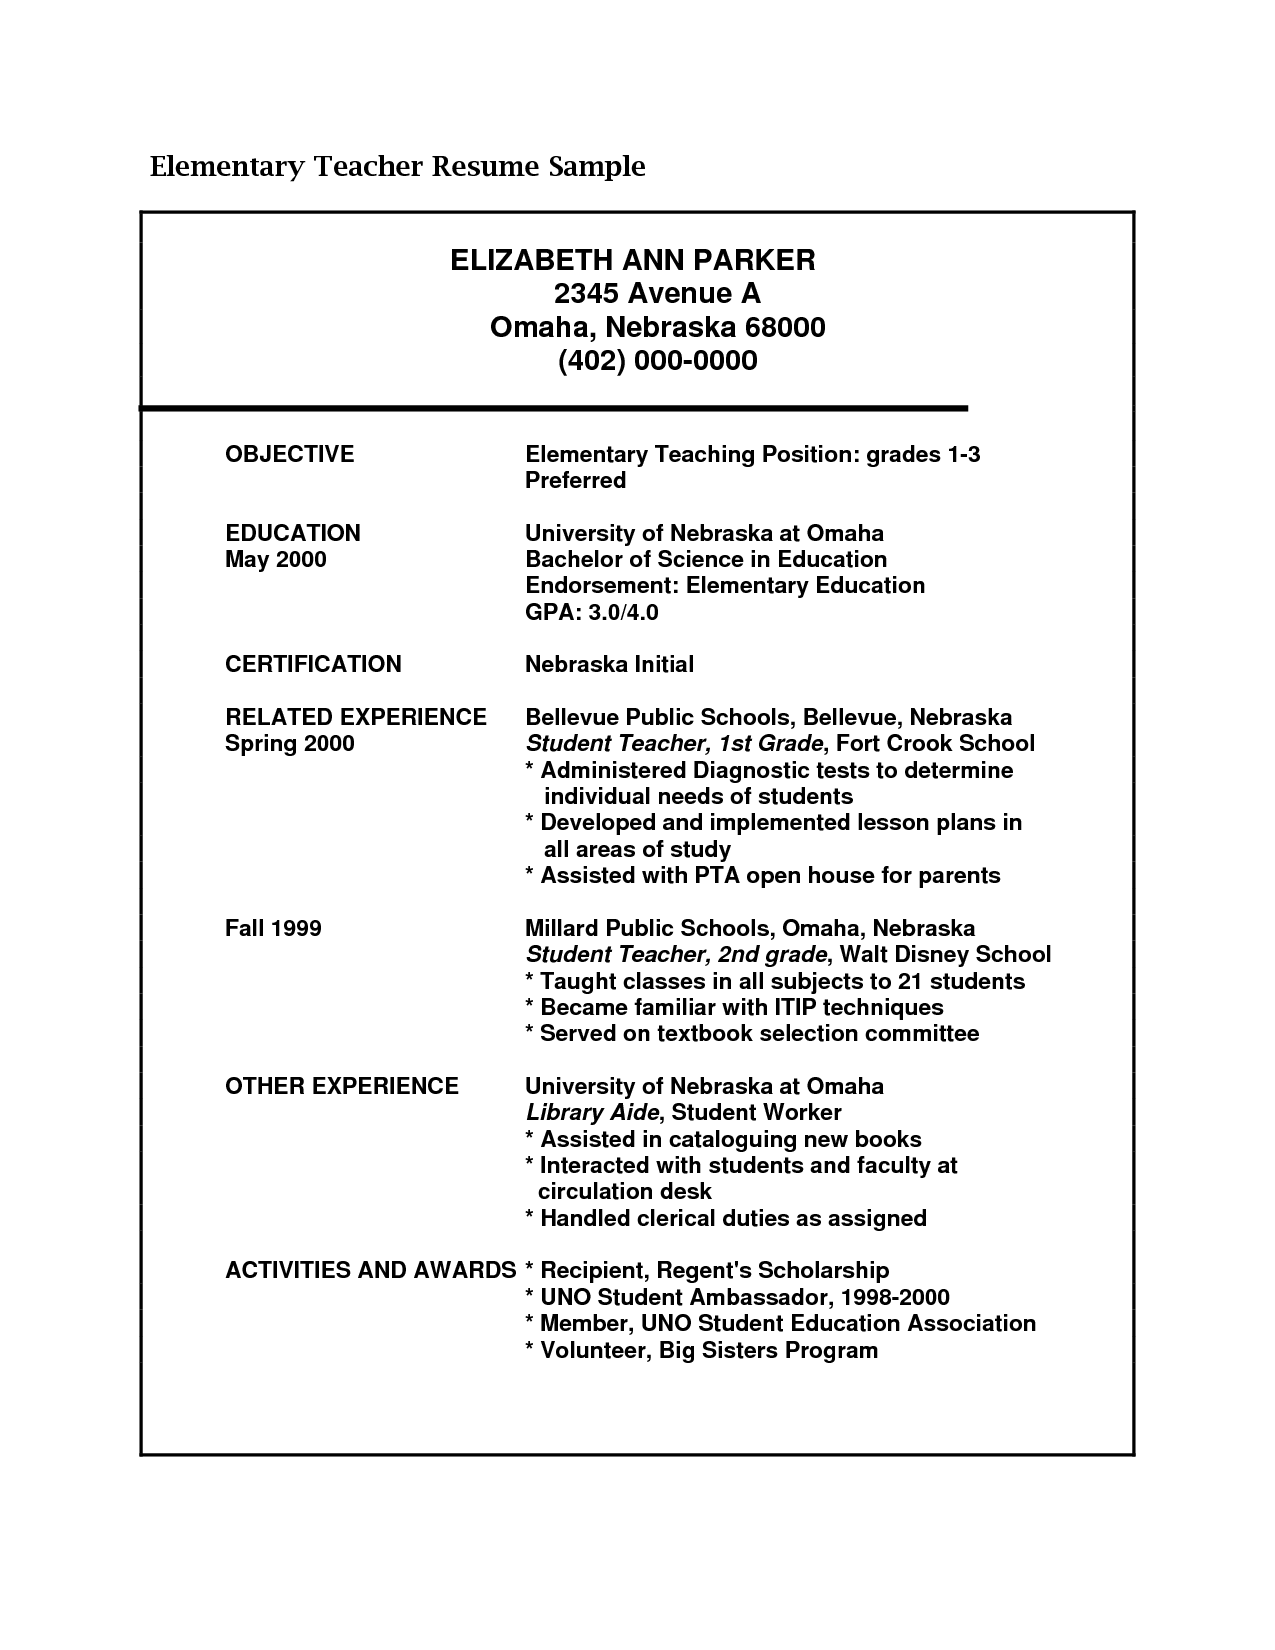 admin teacher resume exampleselementary teacher resume exampleshigh school teacher resume